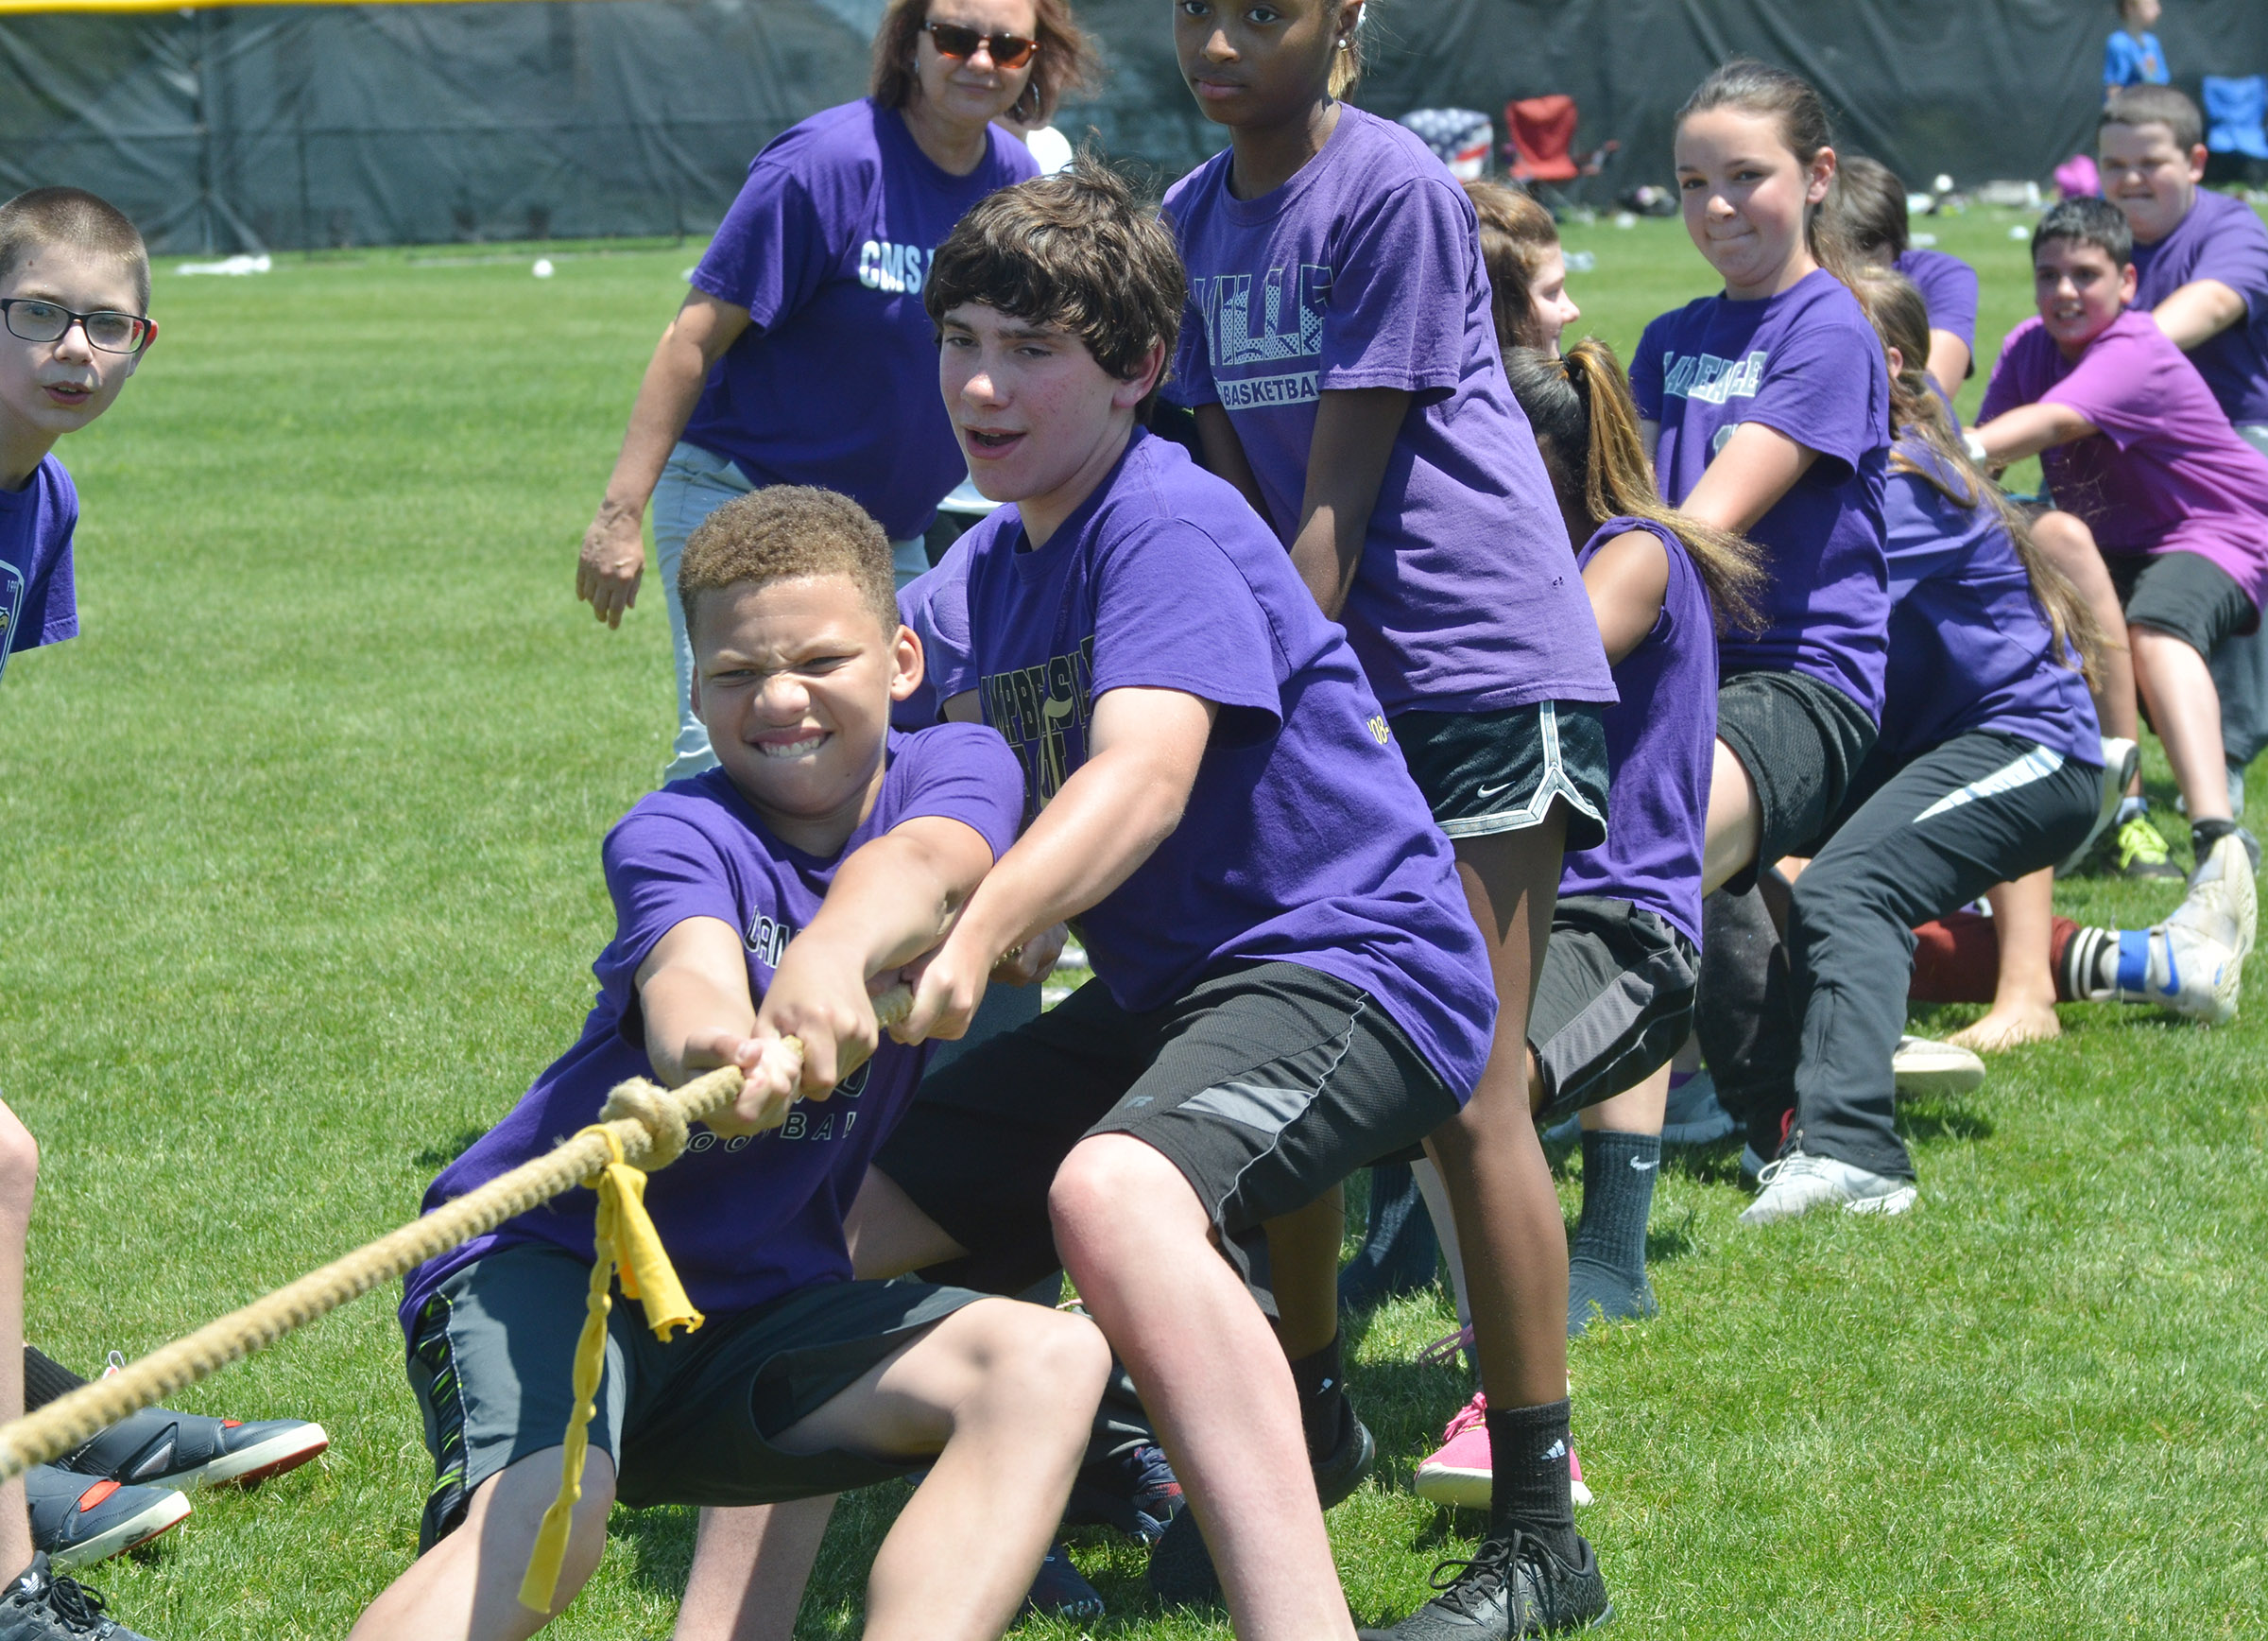 CMS sixth-graders, from left, Dalvian Thornton, Peyton Dabney and Bri Gowdy compete with their classmates in tug of war.